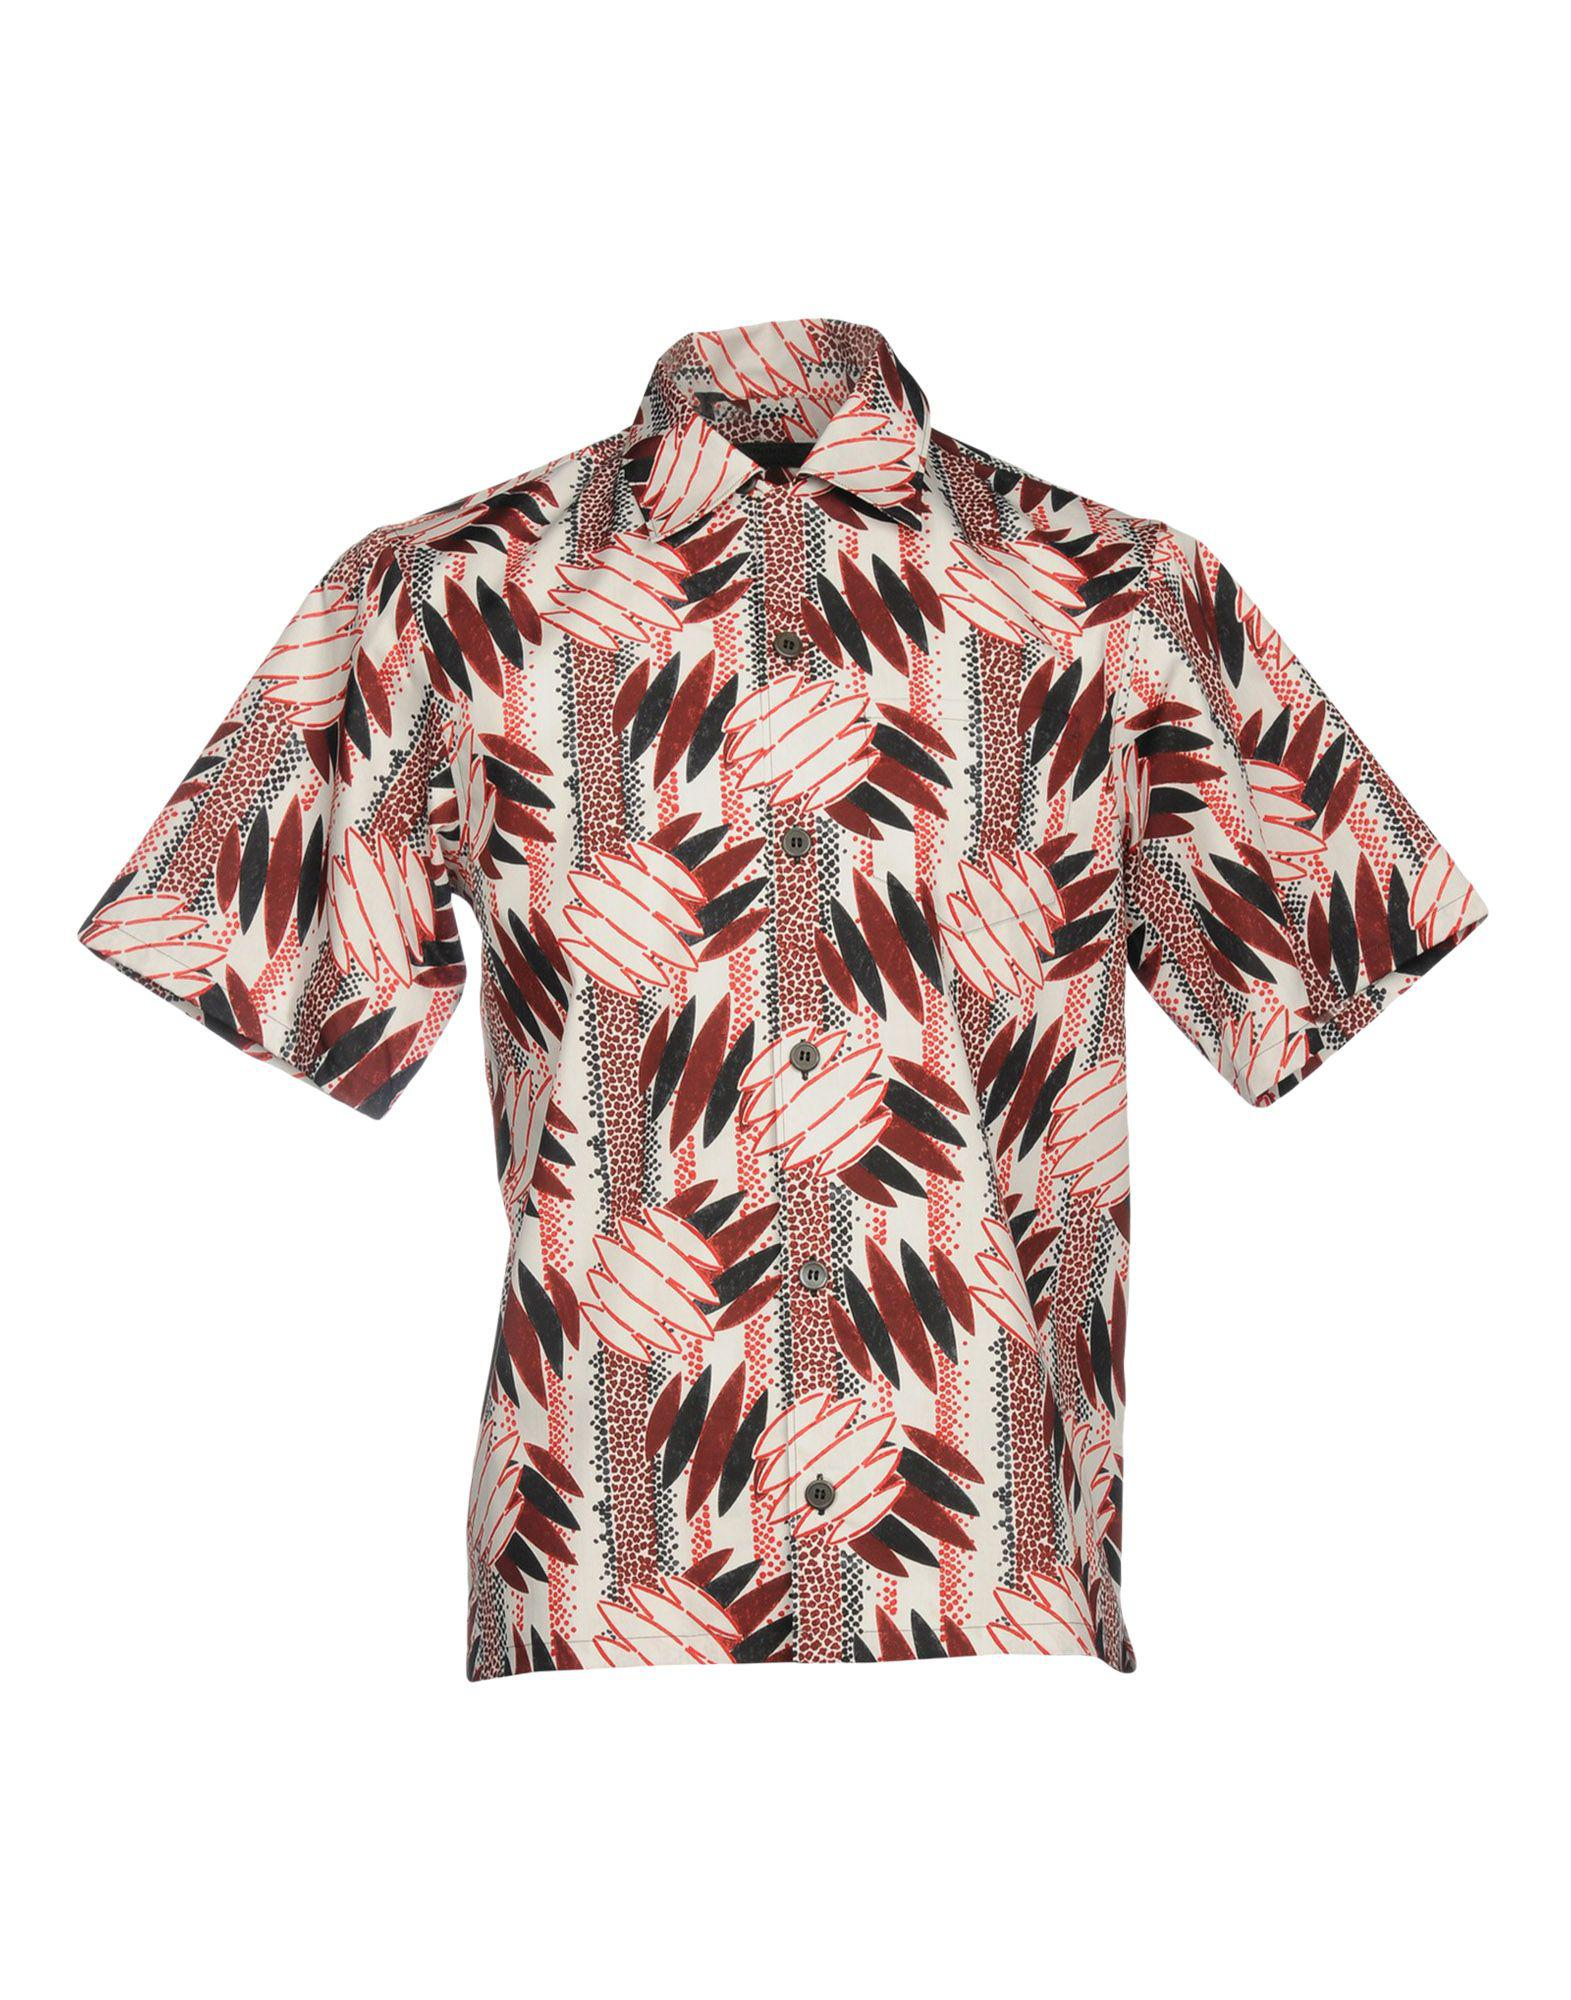 931f7e35a54d Lyst - Prada Shirt in Pink for Men - Save 50%